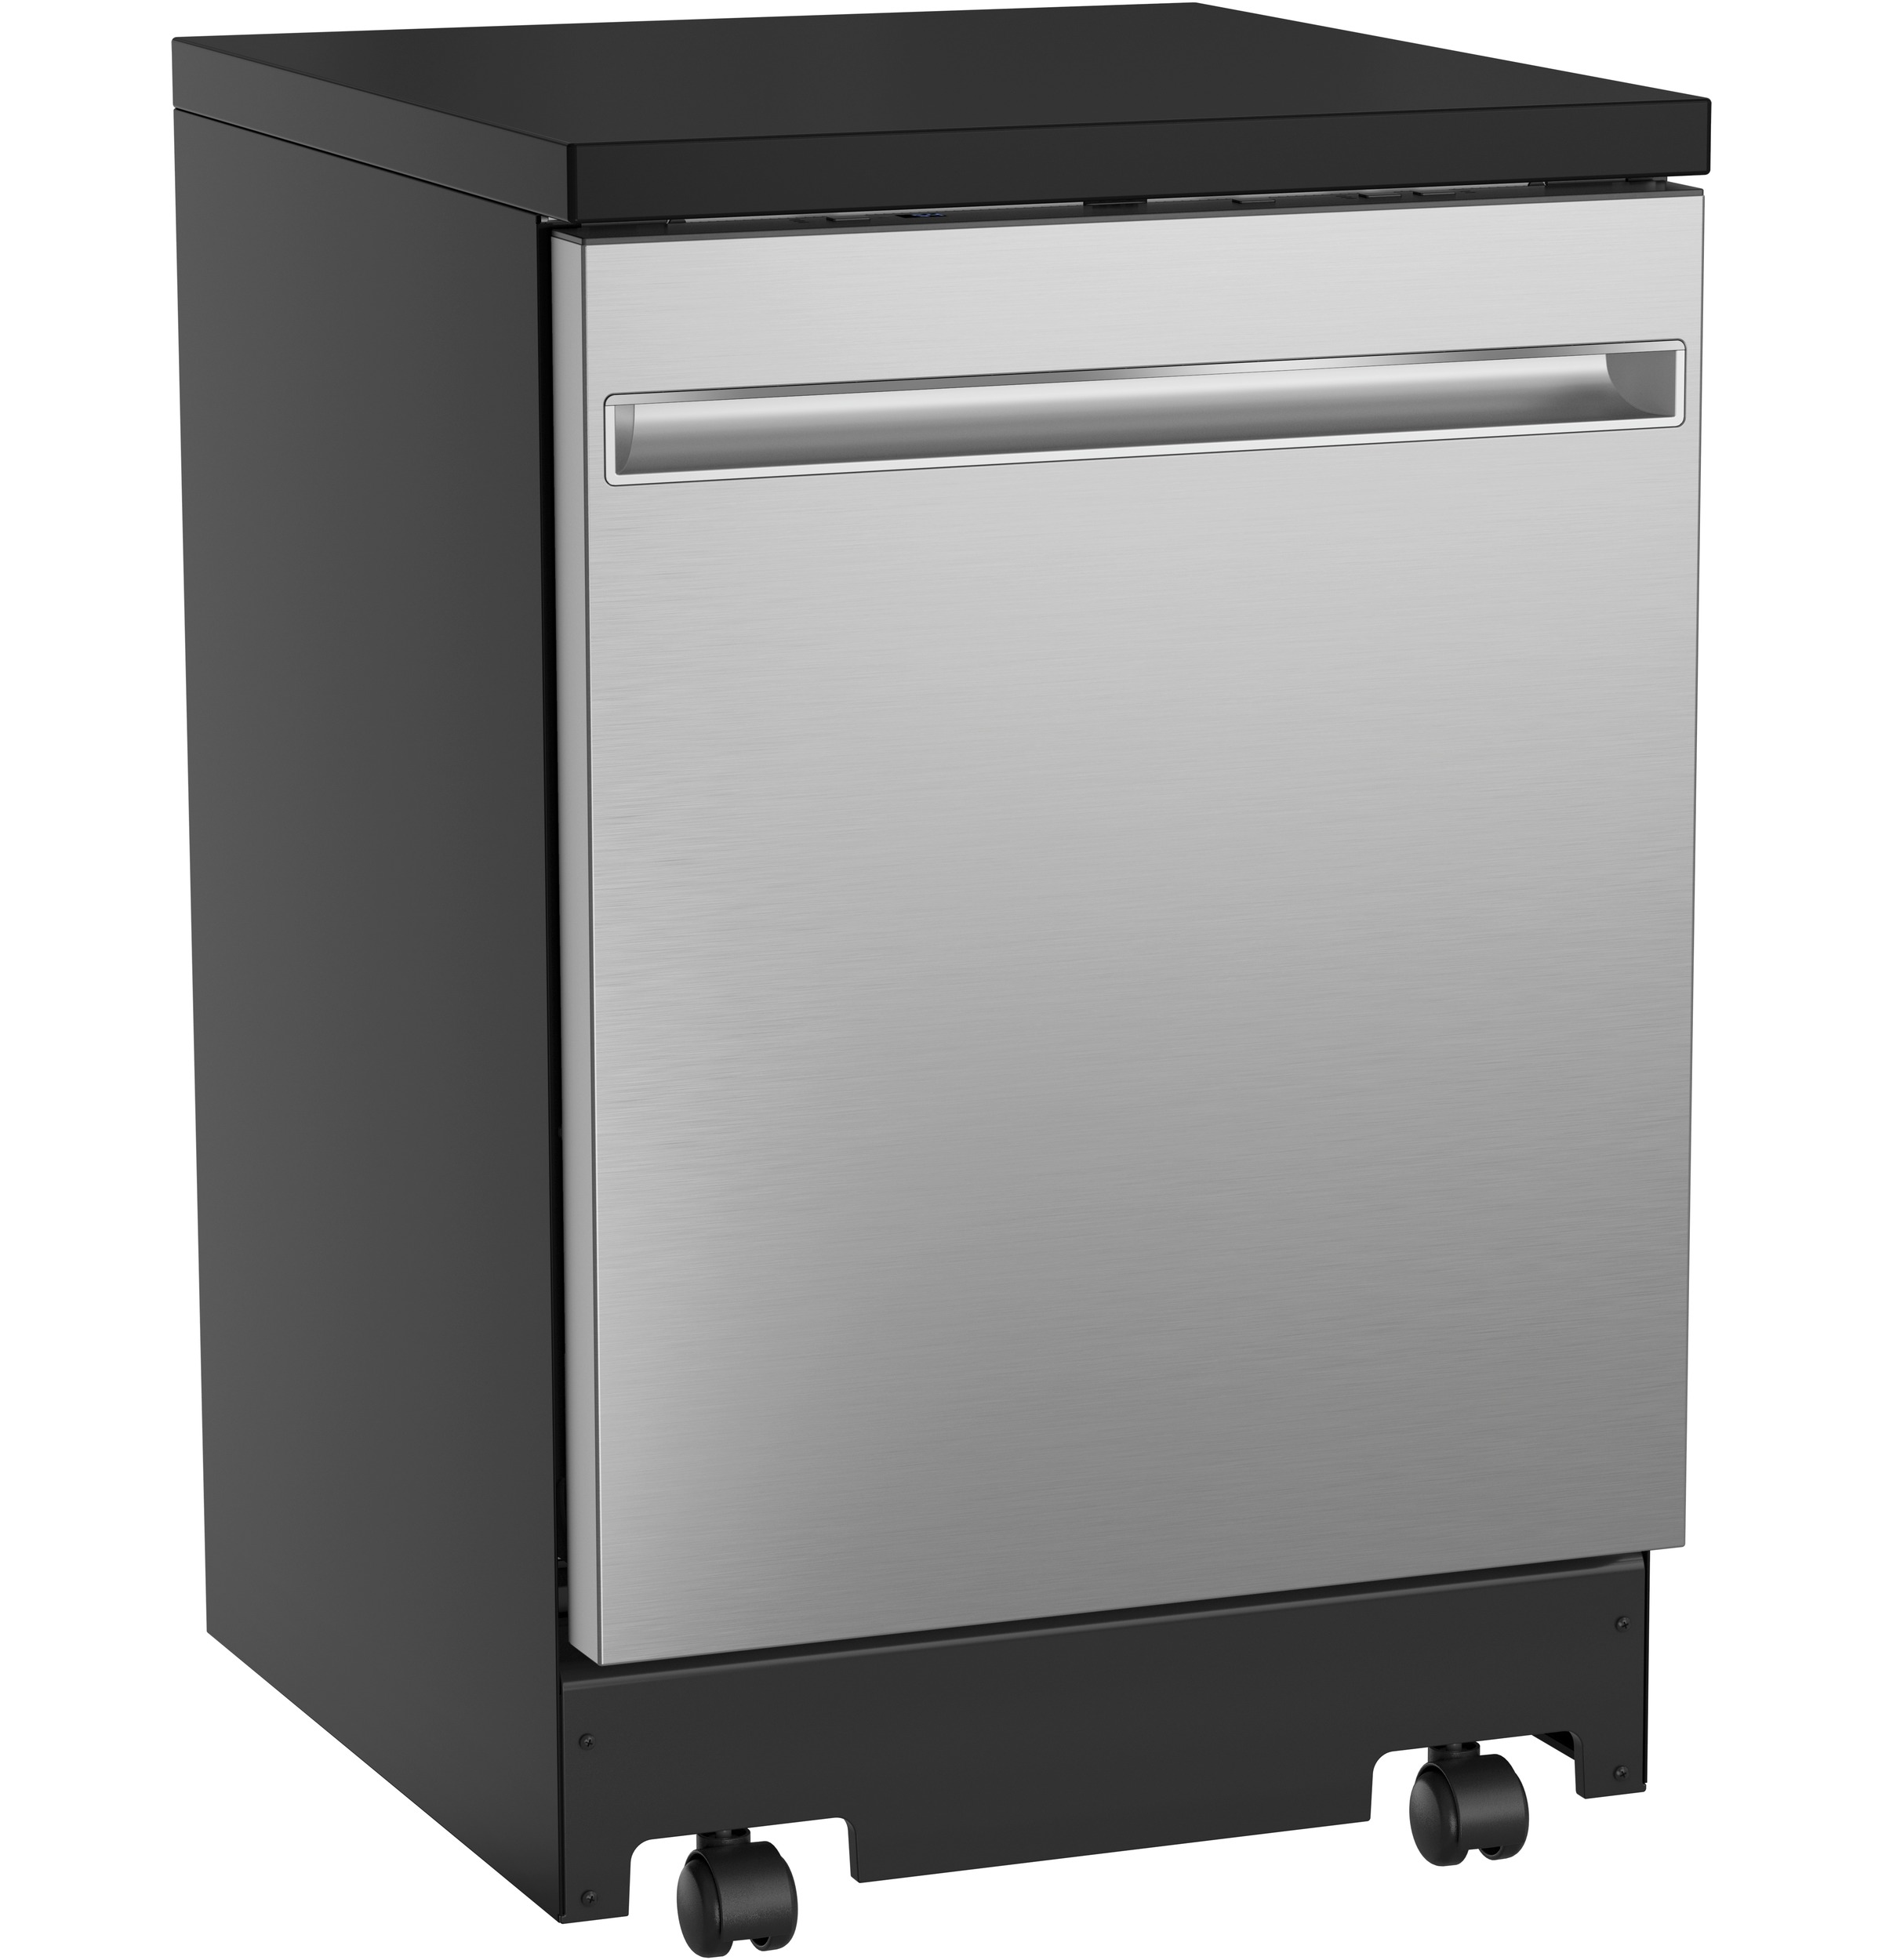 "GE GE® 24"" Stainless Steel Interior Portable Dishwasher with Sanitize Cycle"